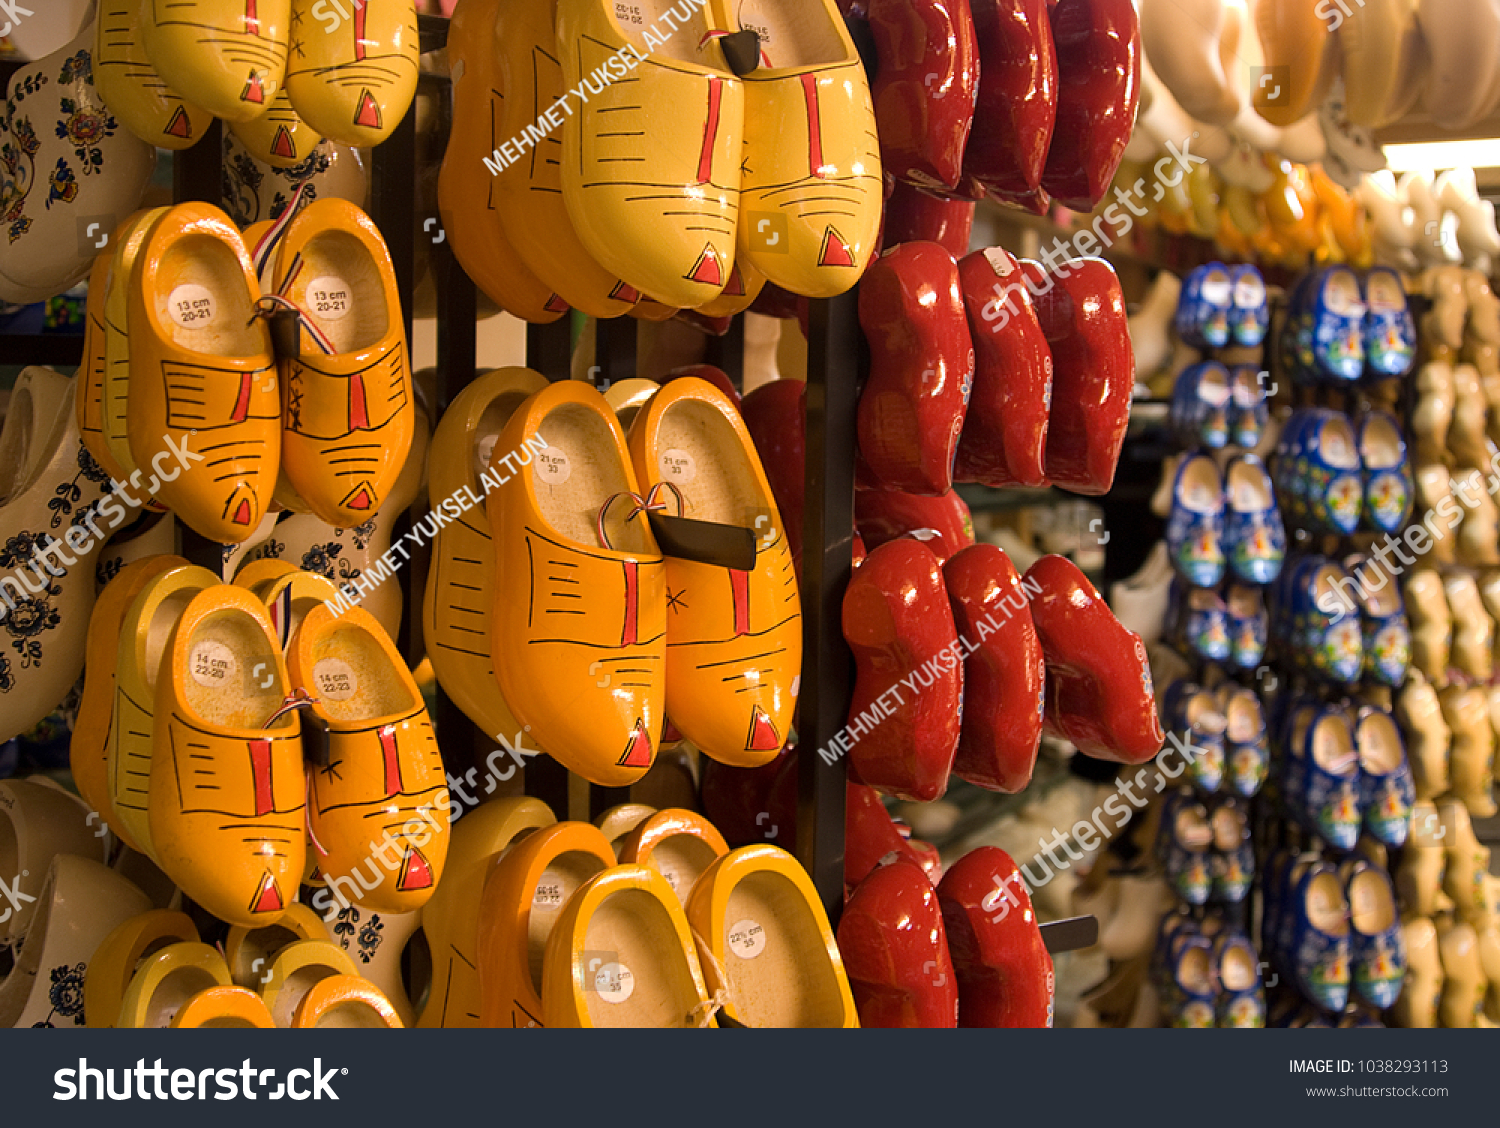 Wooden Shoes Amsterdam Stock Photo Edit Now 1038293113 Shutterstock